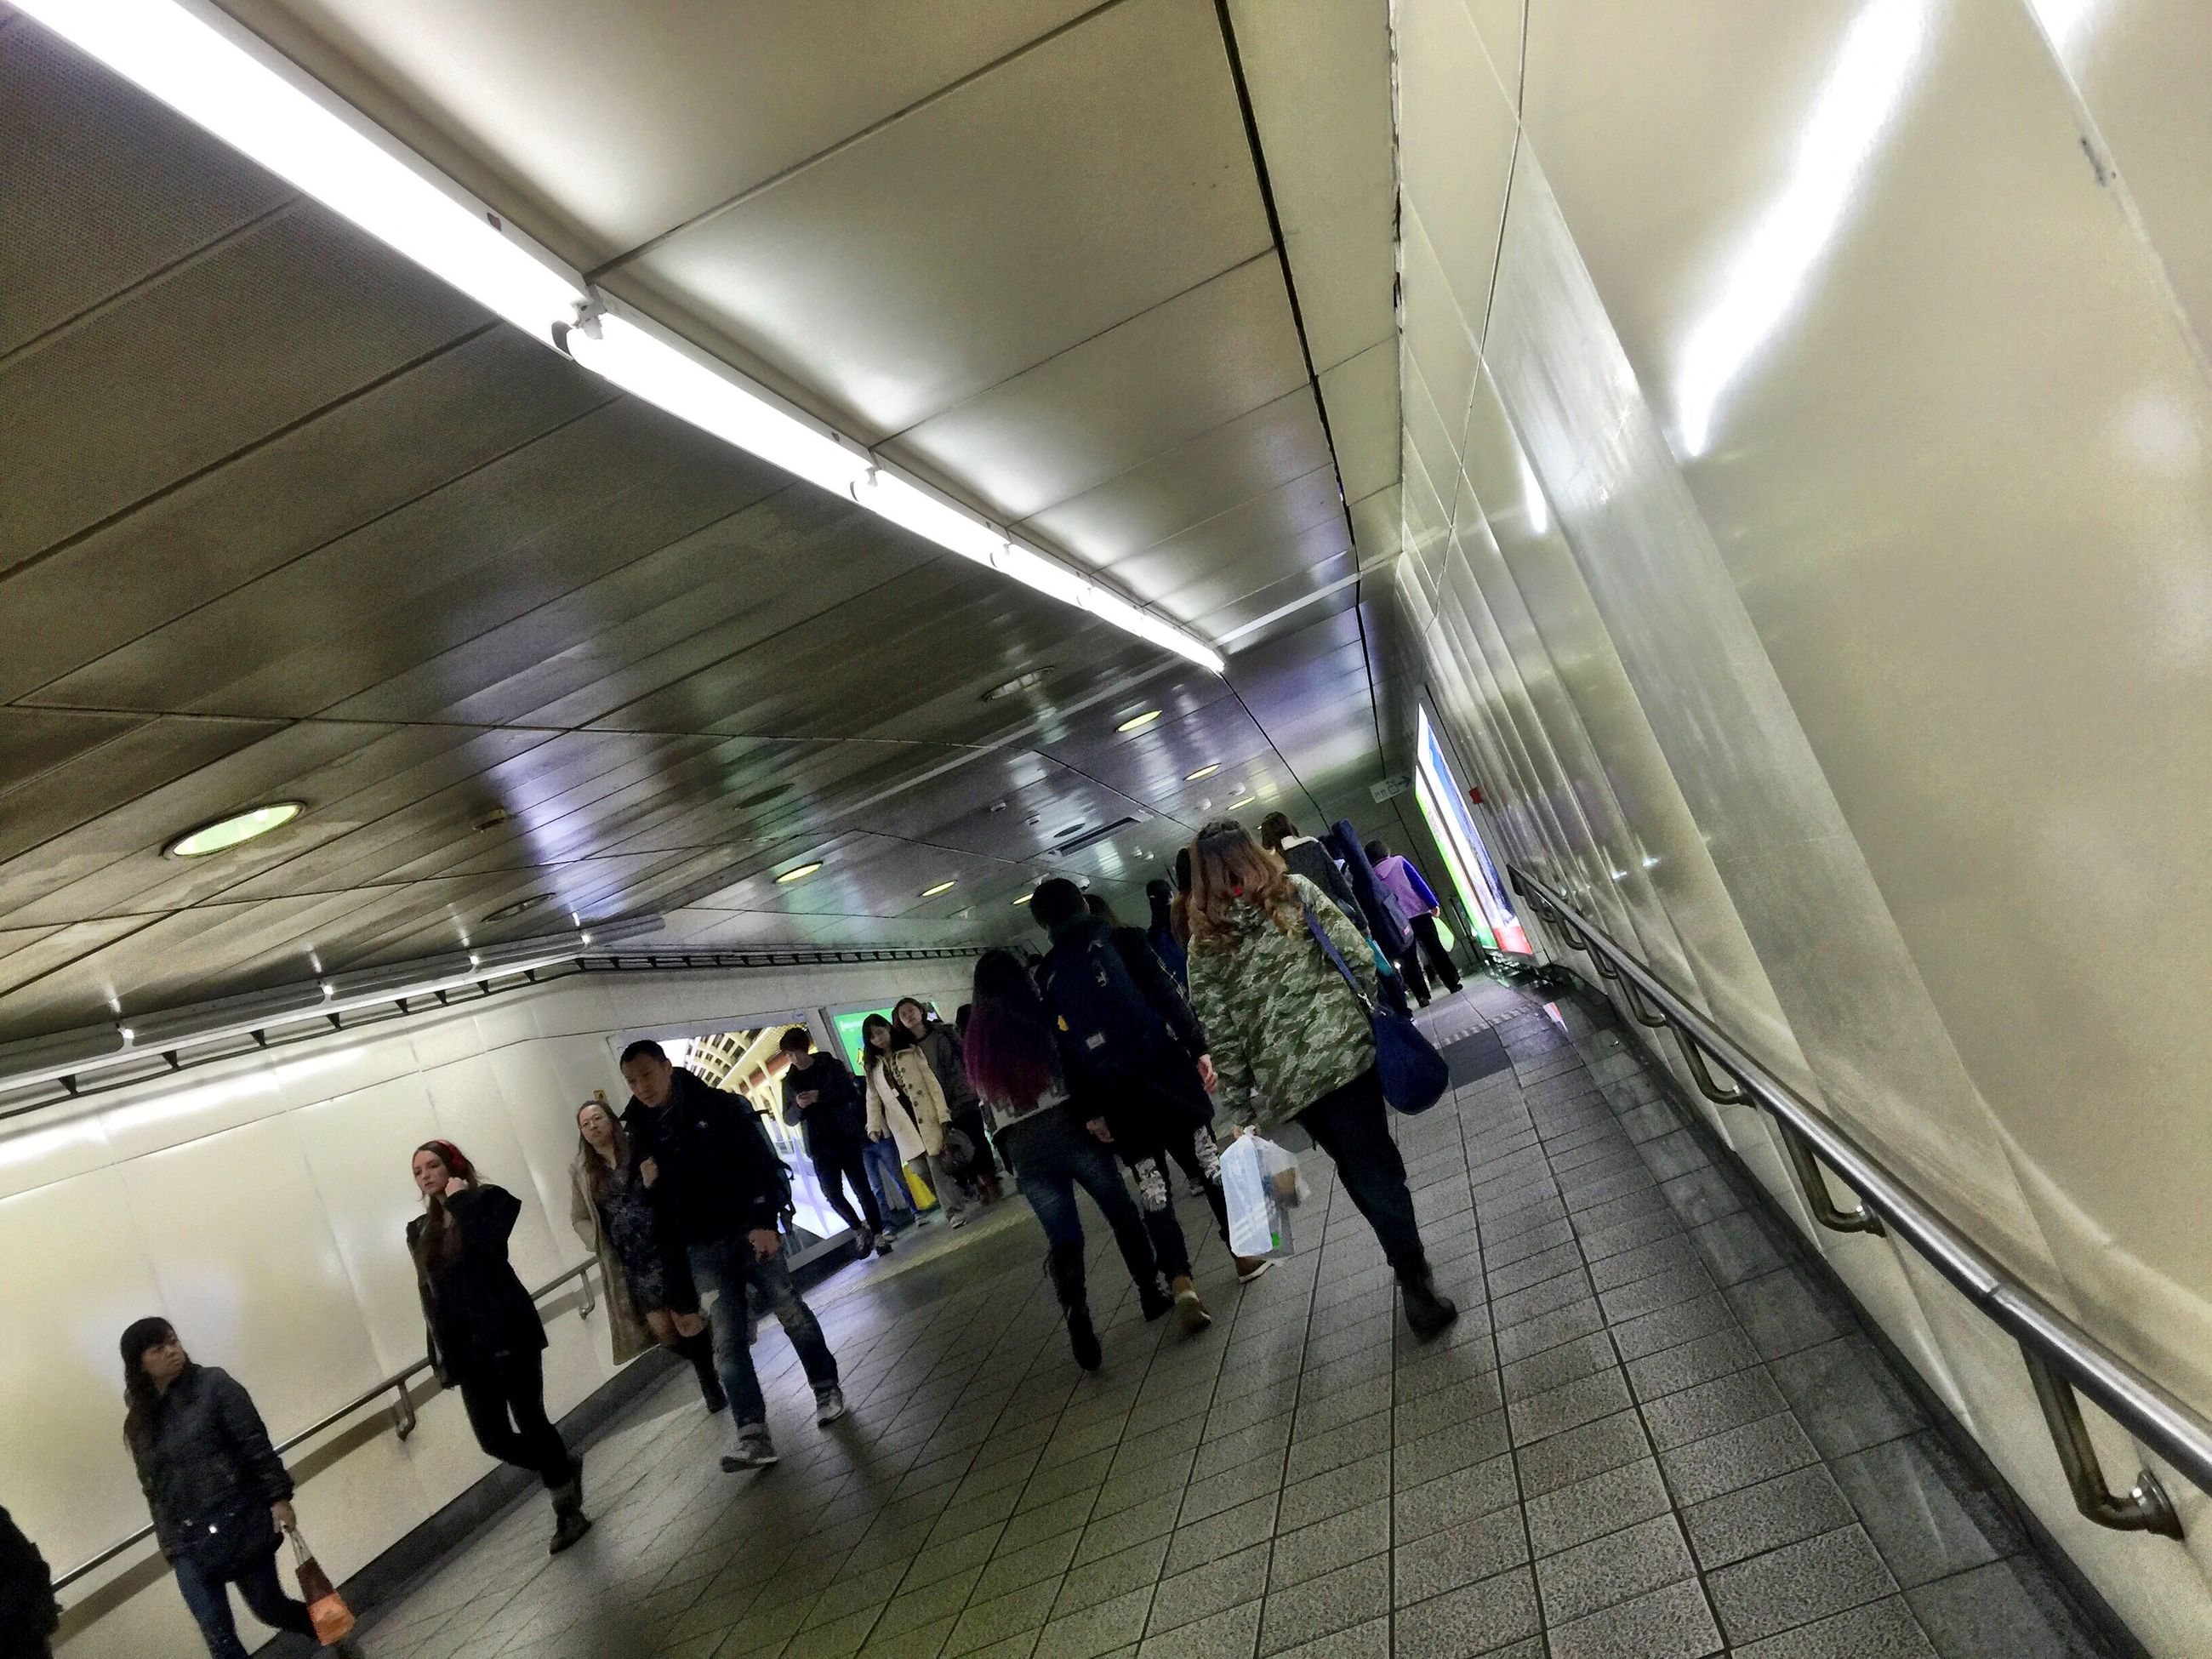 indoors, men, transportation, person, illuminated, lifestyles, large group of people, ceiling, walking, travel, subway station, the way forward, escalator, leisure activity, subway, mode of transport, lighting equipment, on the move, medium group of people